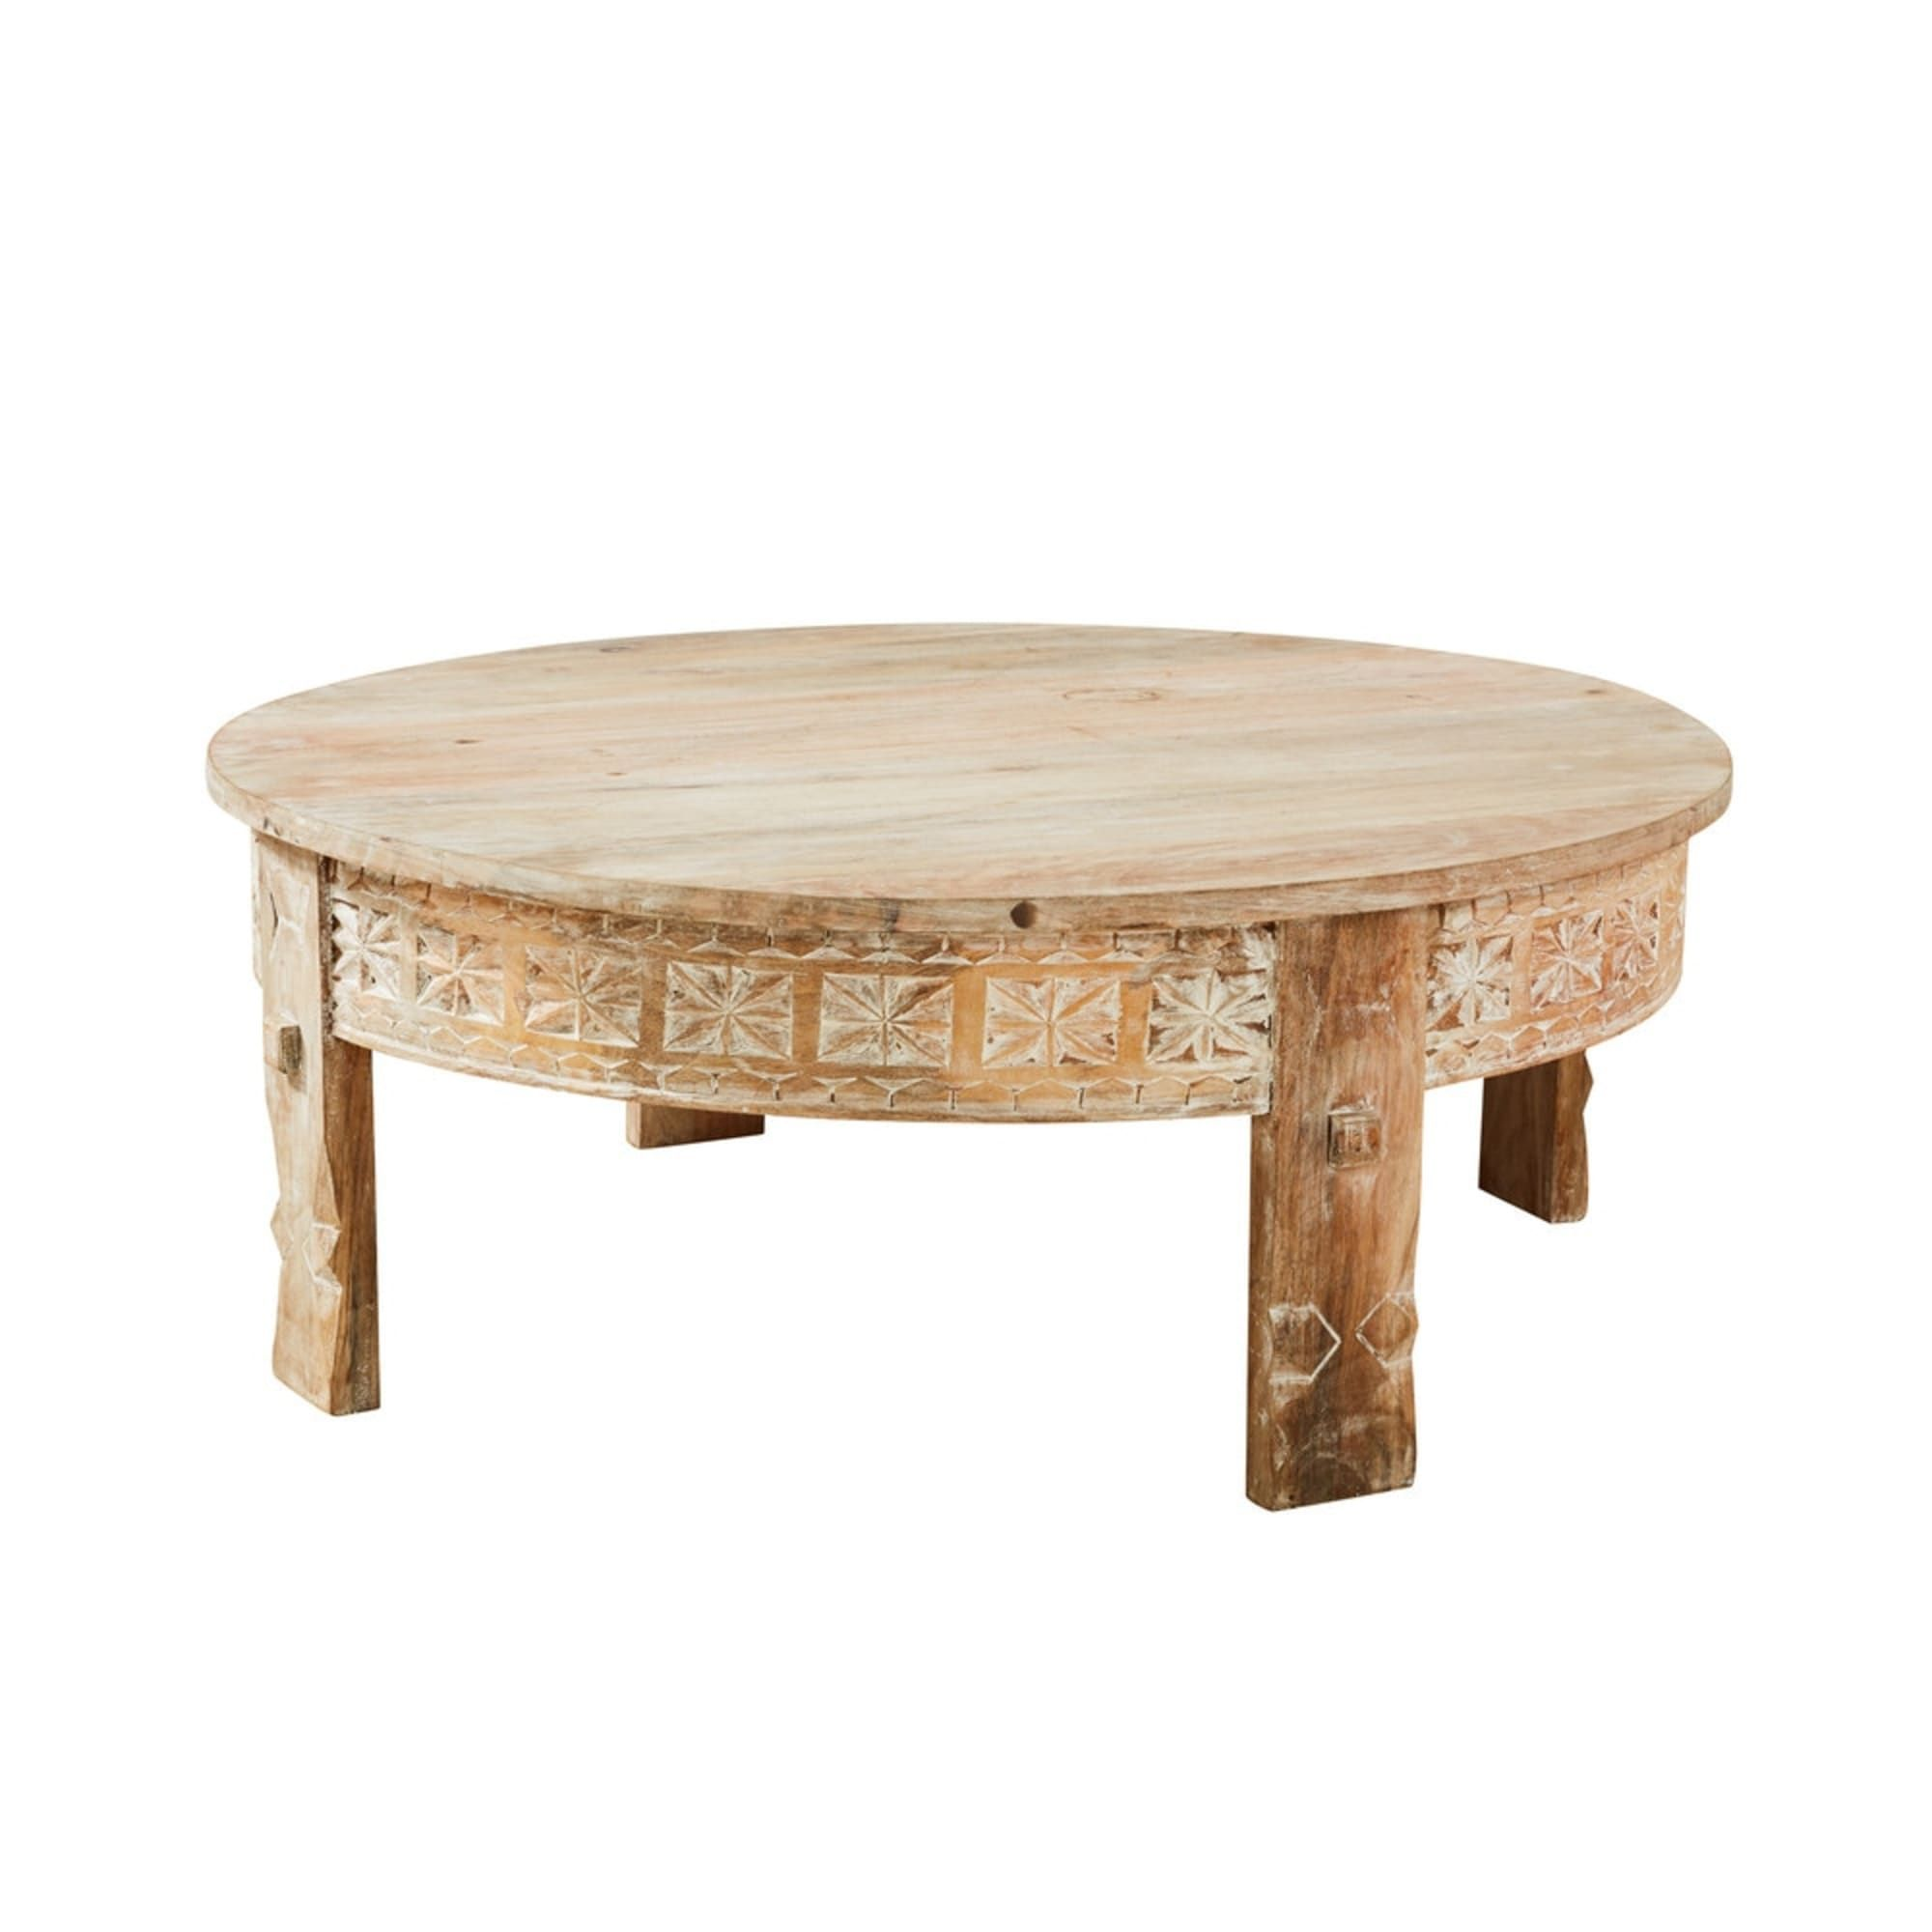 Table Basse Ronde En Manguier Massif Sculpte Manilal Maisons Du Monde Table Basse Indienne Table Basse Ronde Maison Du Monde Table Basse